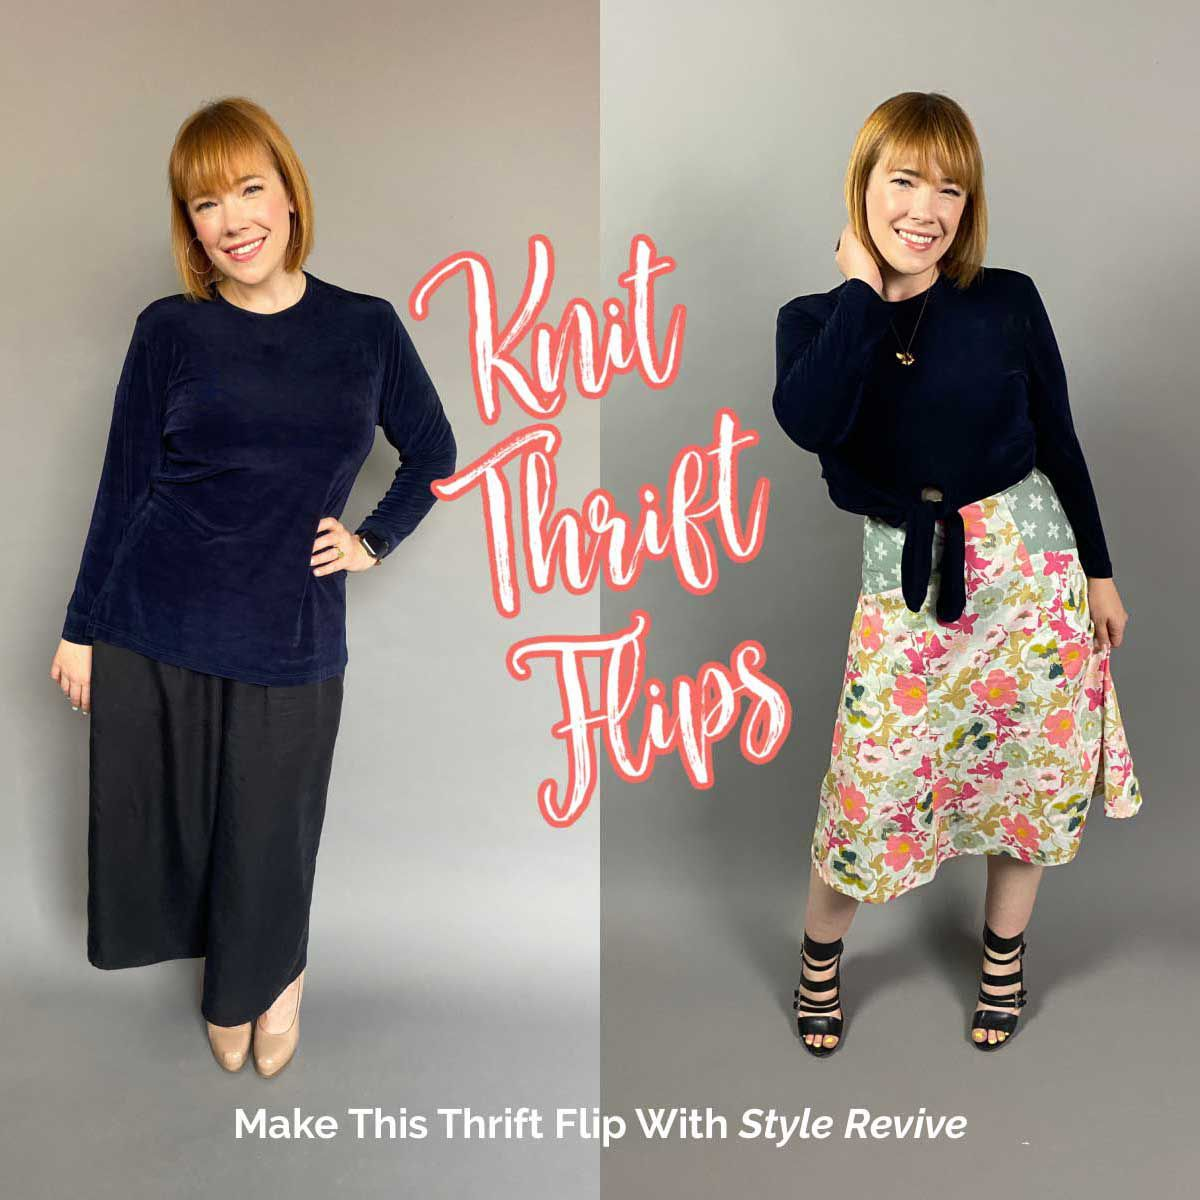 Thrift Flip Knits to Cute Wearables with this episode of Style Revive